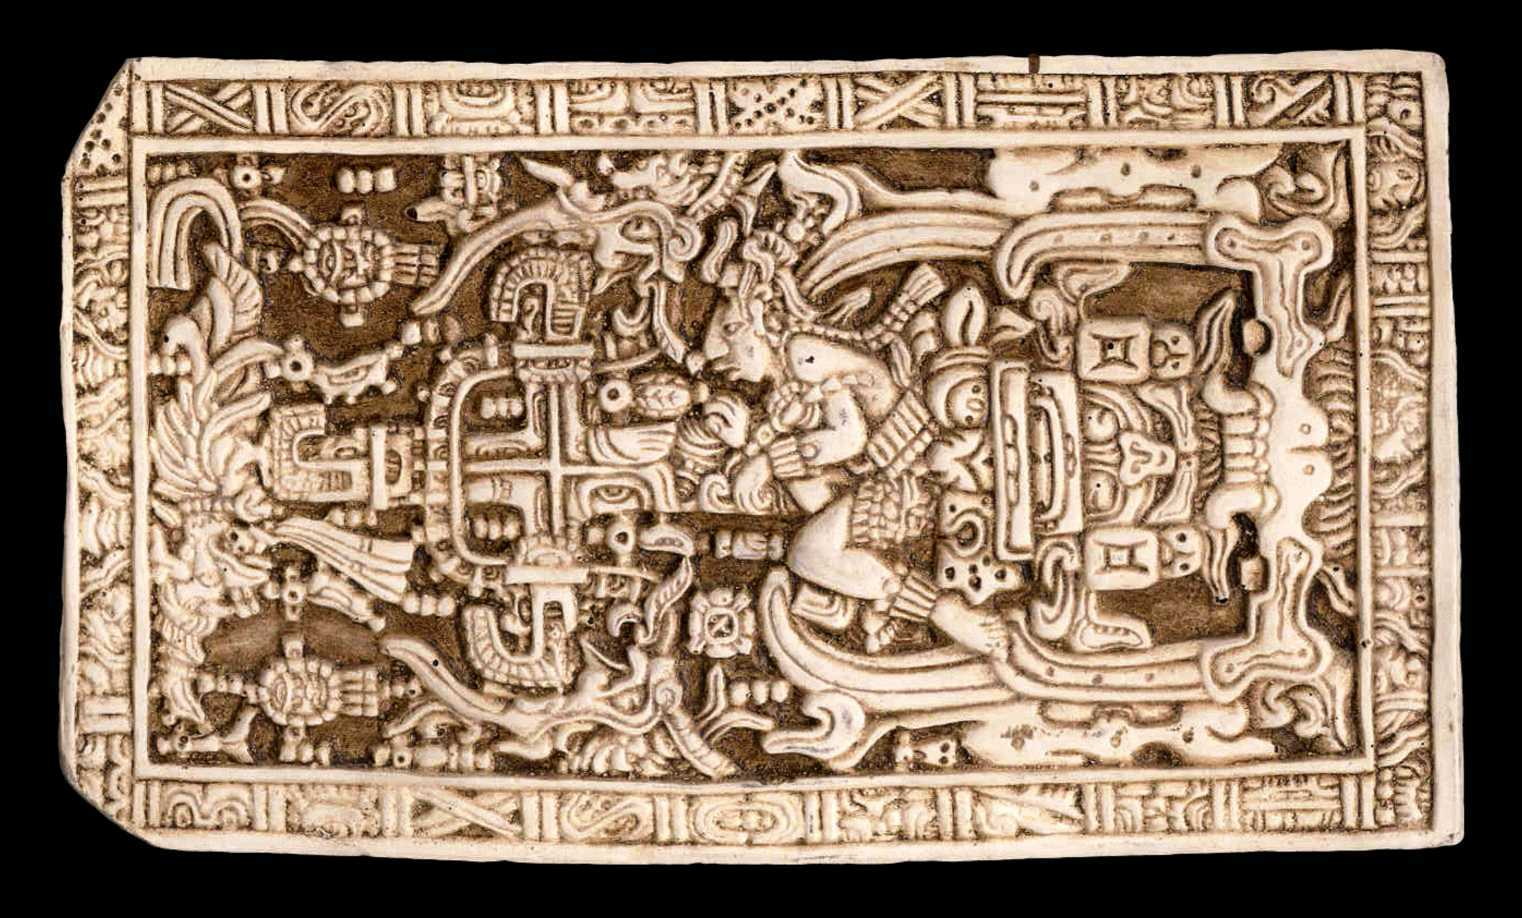 Were the Mayans visited by ancient astronauts? 7